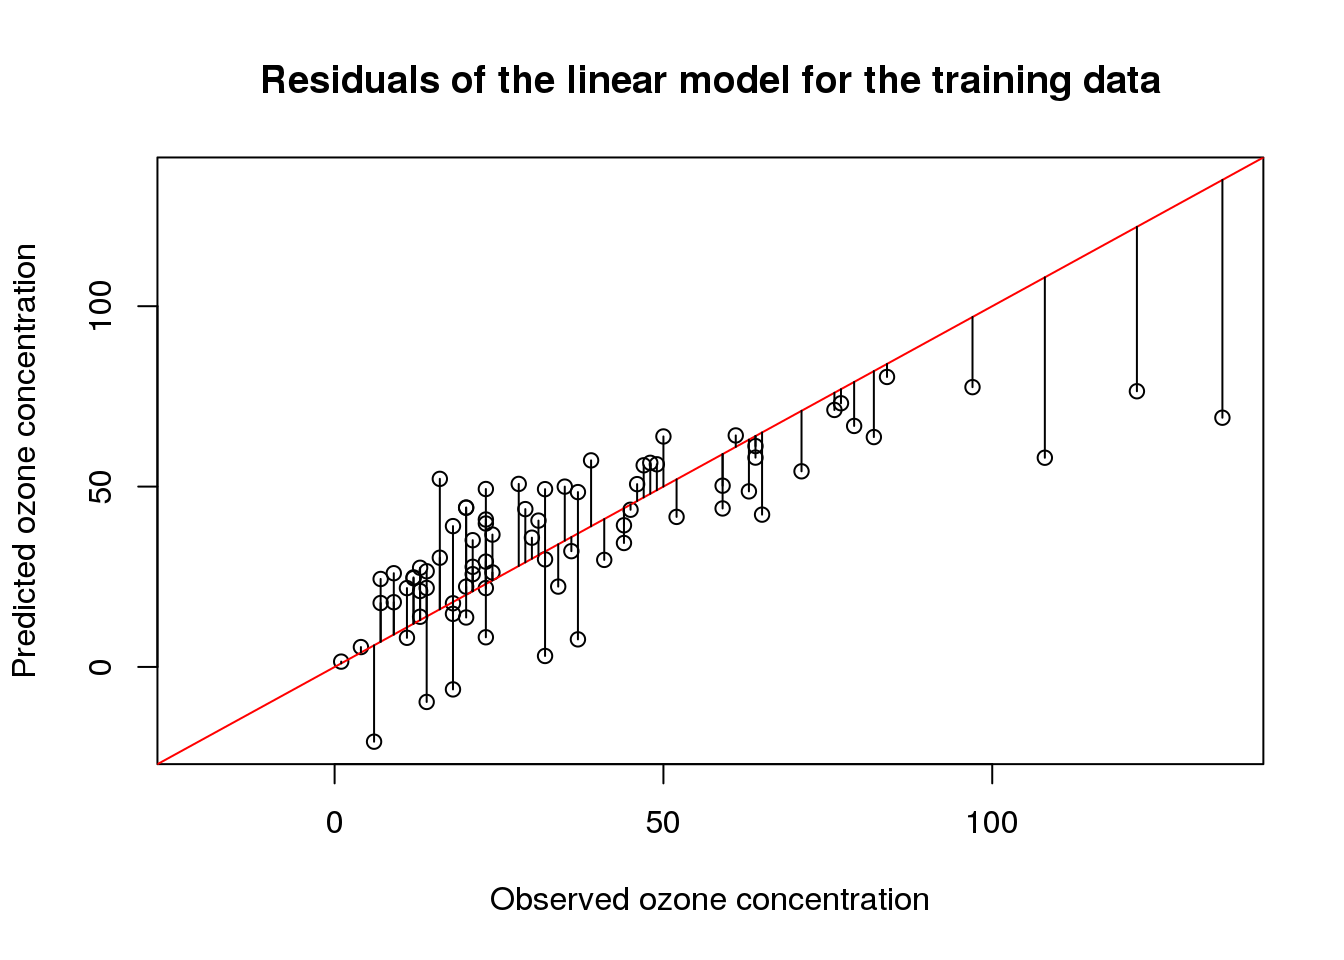 Interpreting Linear Prediction Models